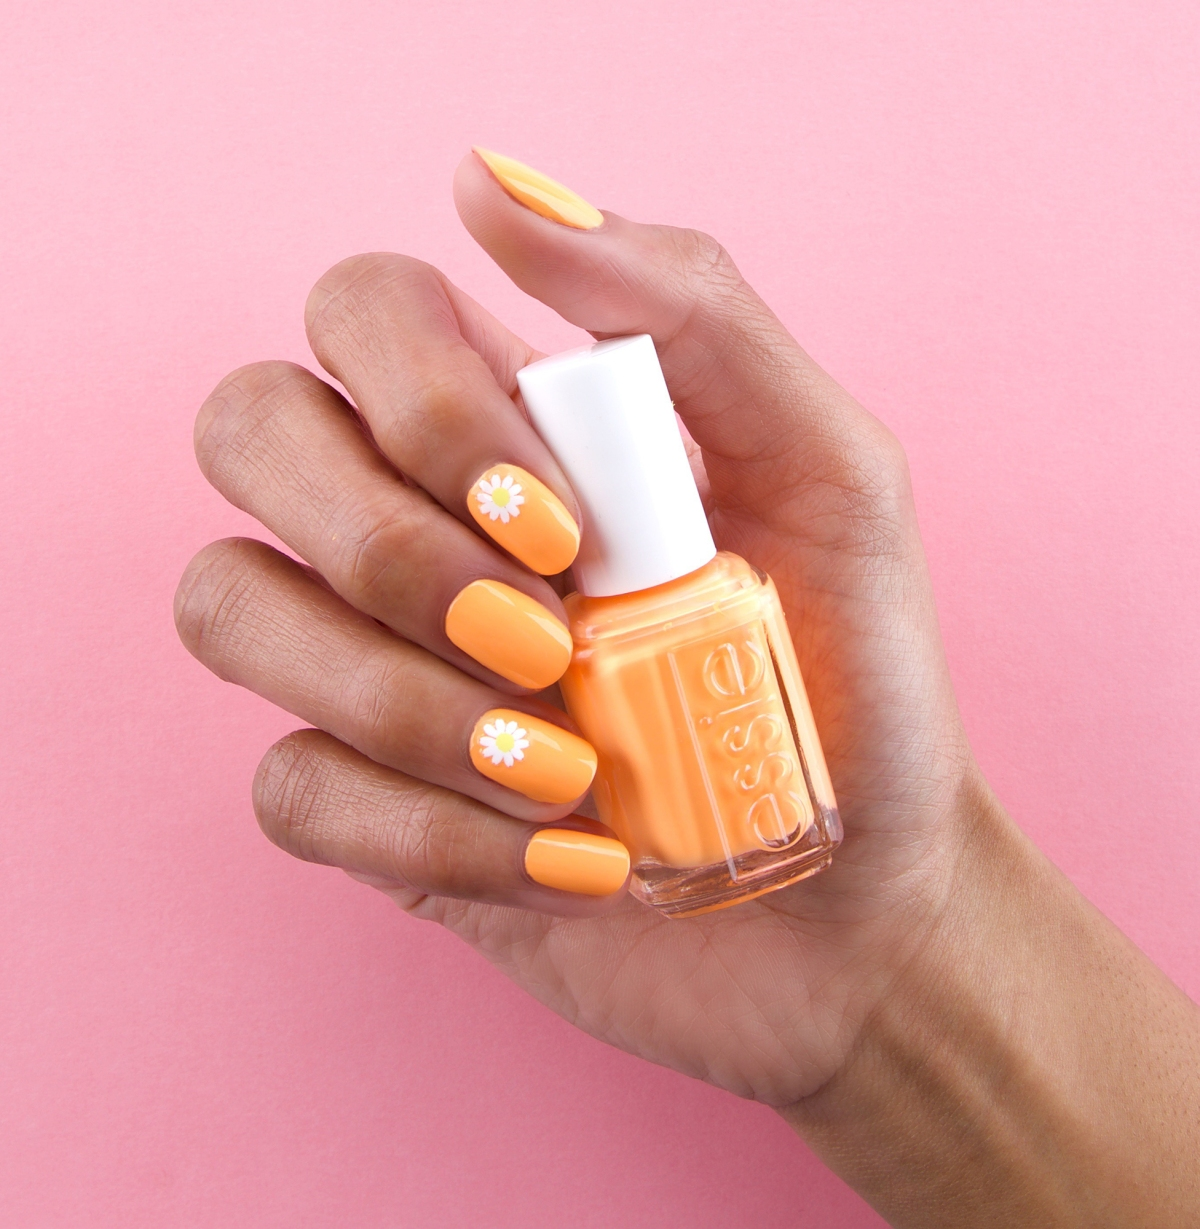 Essie x Olive and June Summer 2019 Nail Stickers: Details